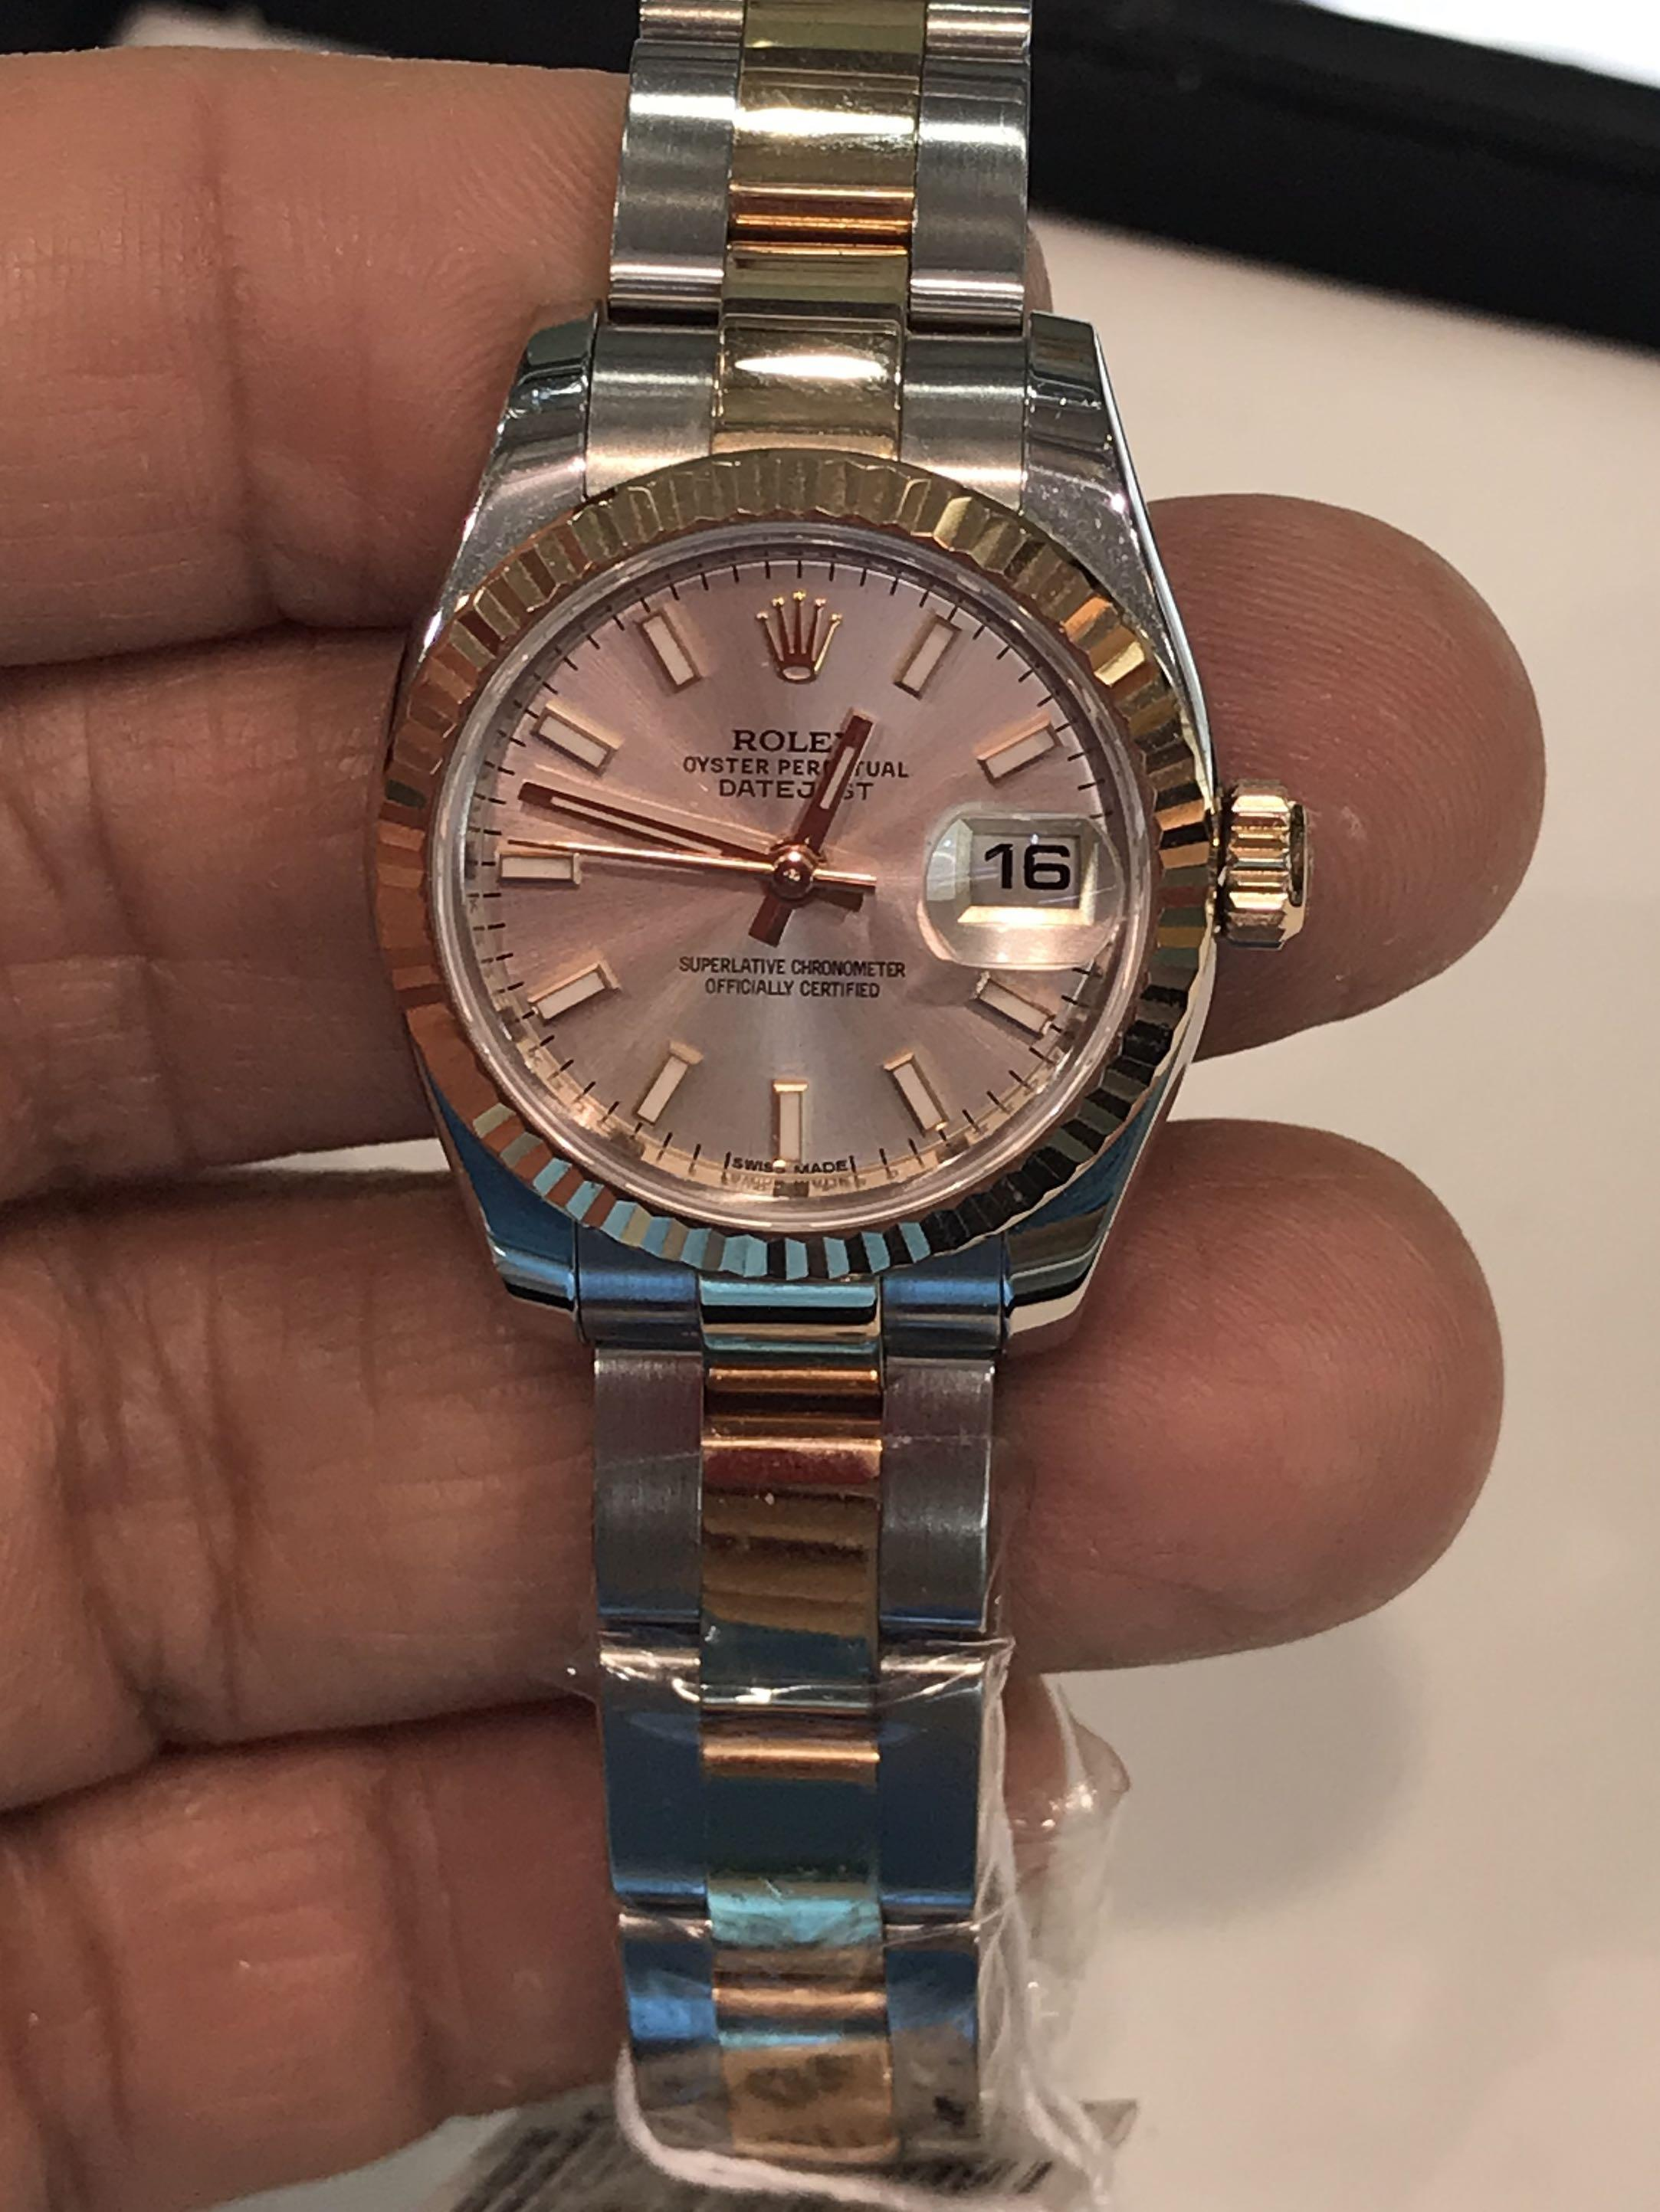 CLEARANCE SALES {Luxury Dress Watch - ROLEX} Authentic Half Gold ROLEX Ladies OYSTER PERPETUAL DATEJUST SUPERLATIVE CHRONOMETER OFFICIAL CERTIFIED 26mm Pink Dial Model 179171 Come With Original 18K Gold Bezel & Half Gold Jubilee Bracelet - Best Buy